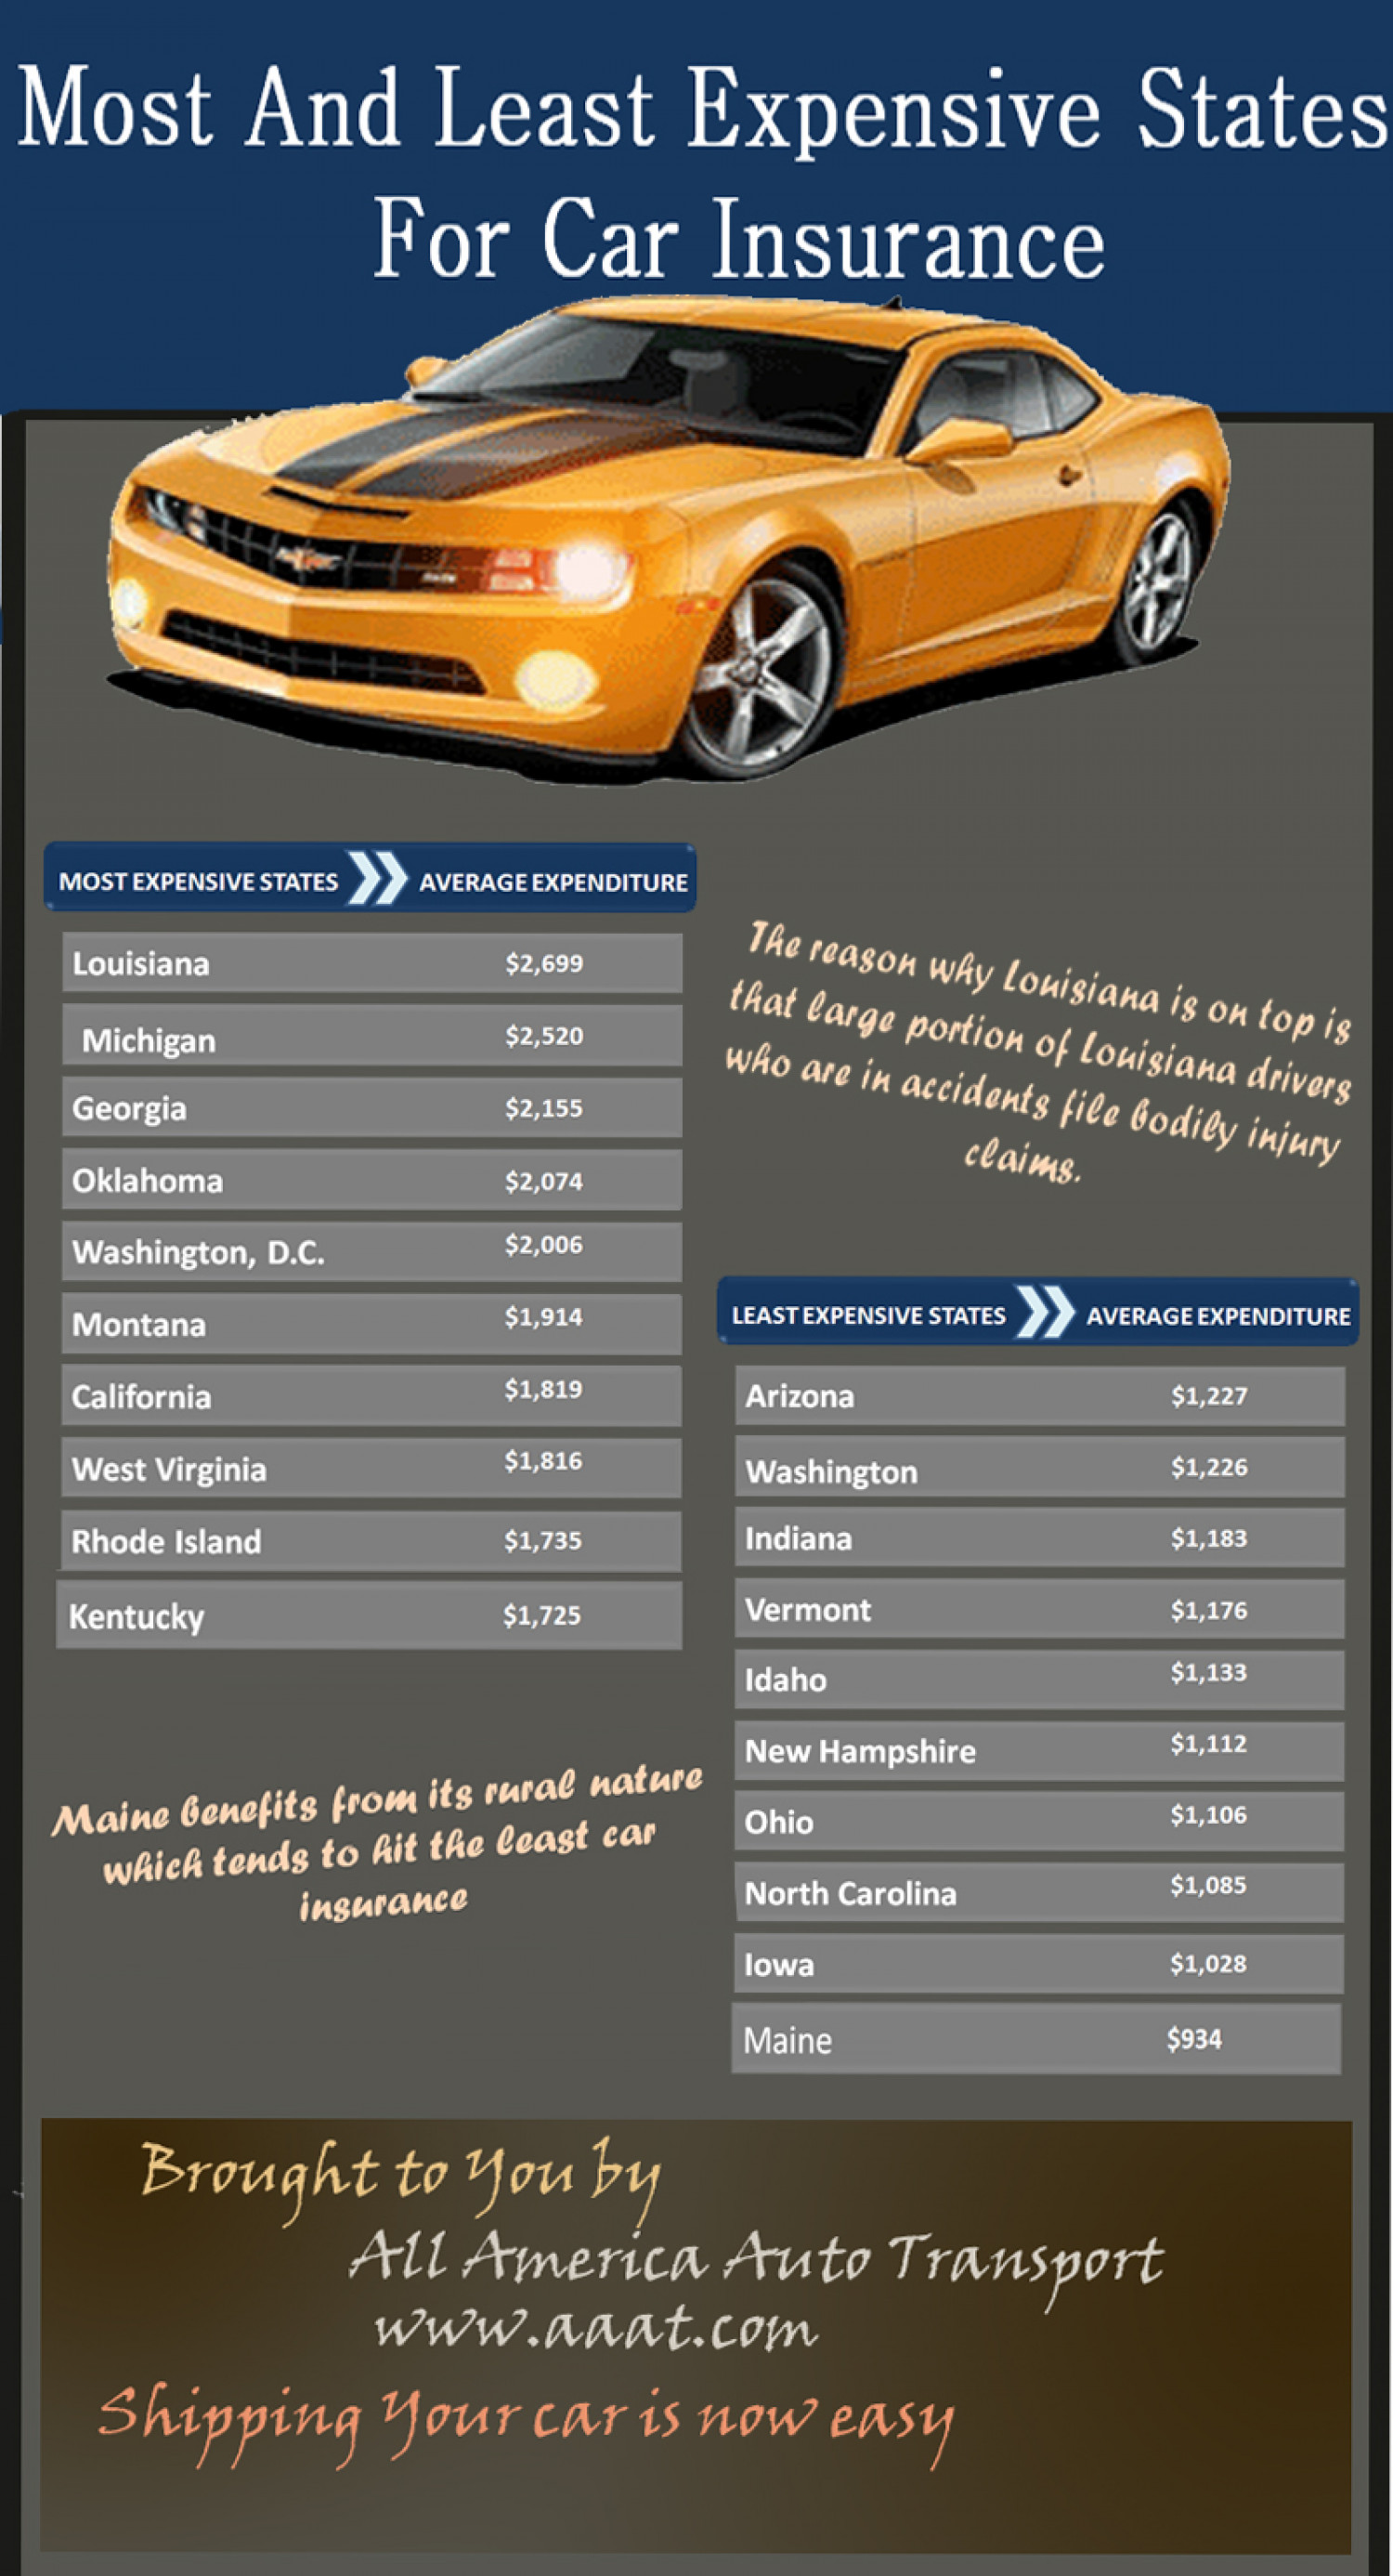 Most And Least Expensive States For Car Insurance - An infographic Infographic